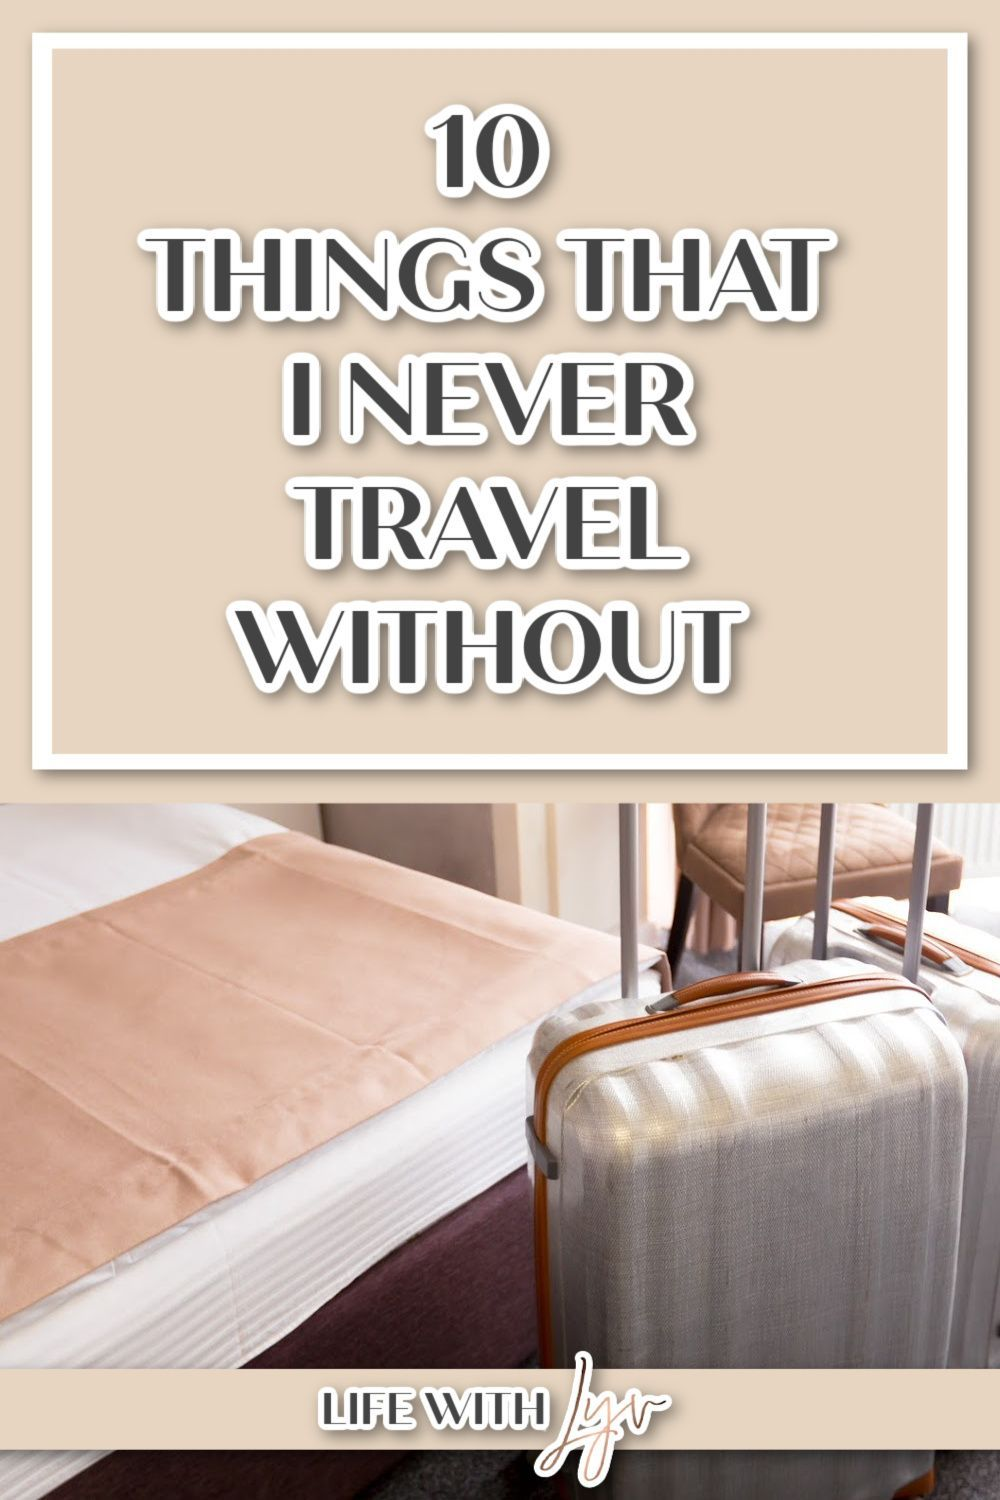 Are you struggling on narrowing down what to pack and what not to pack? This is a list of tried and true items that you should never travel without! #TravelEssentials #TravelTips #TravelDestination #InternationalTravel #LongFlight #JetLagRemedy